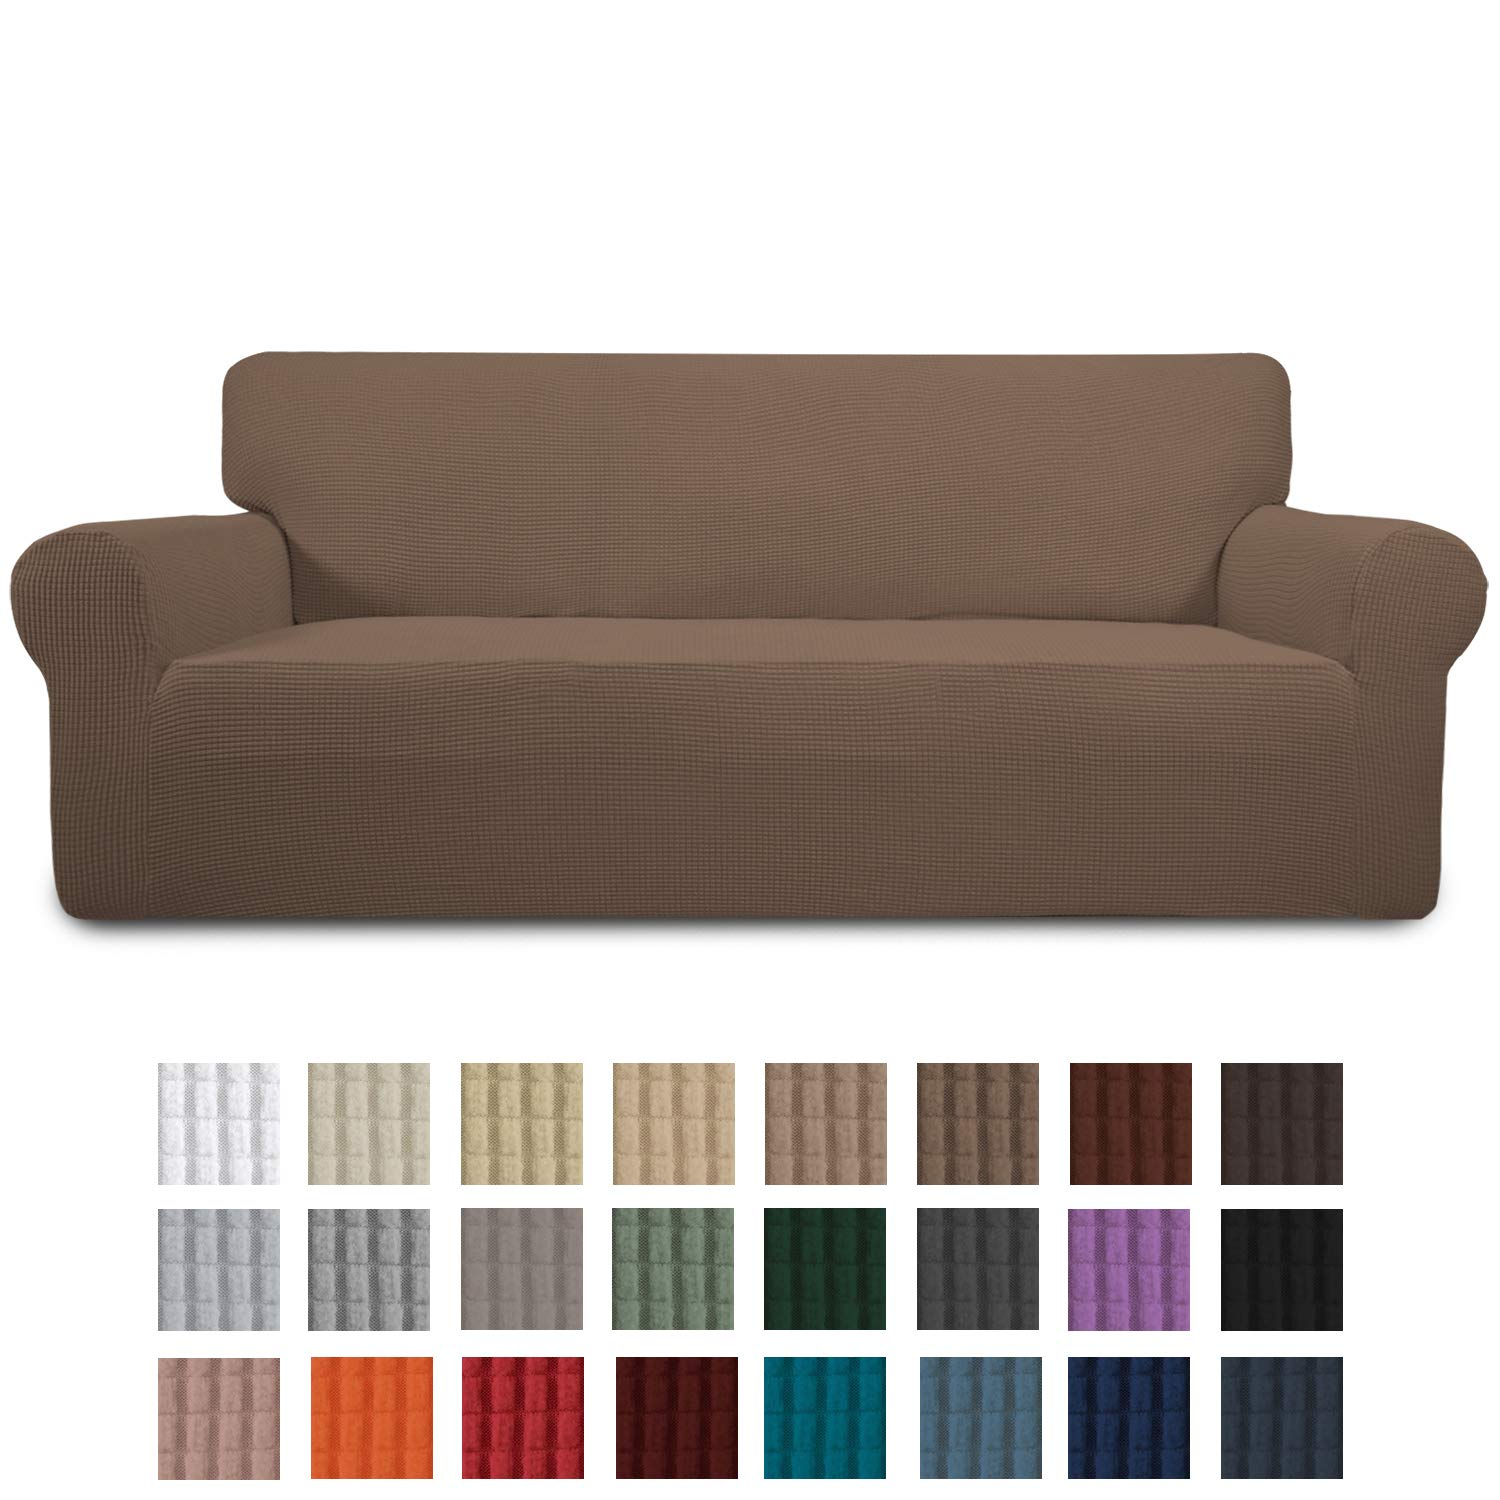 Easy-Going Stretch Sofa Slipcover 1-Piece Sofa Cover Furniture Protector Couch Soft with Elastic Bottom for Kids, Spandex Jacquard Fabric Small Checks(Sofa,Brown)